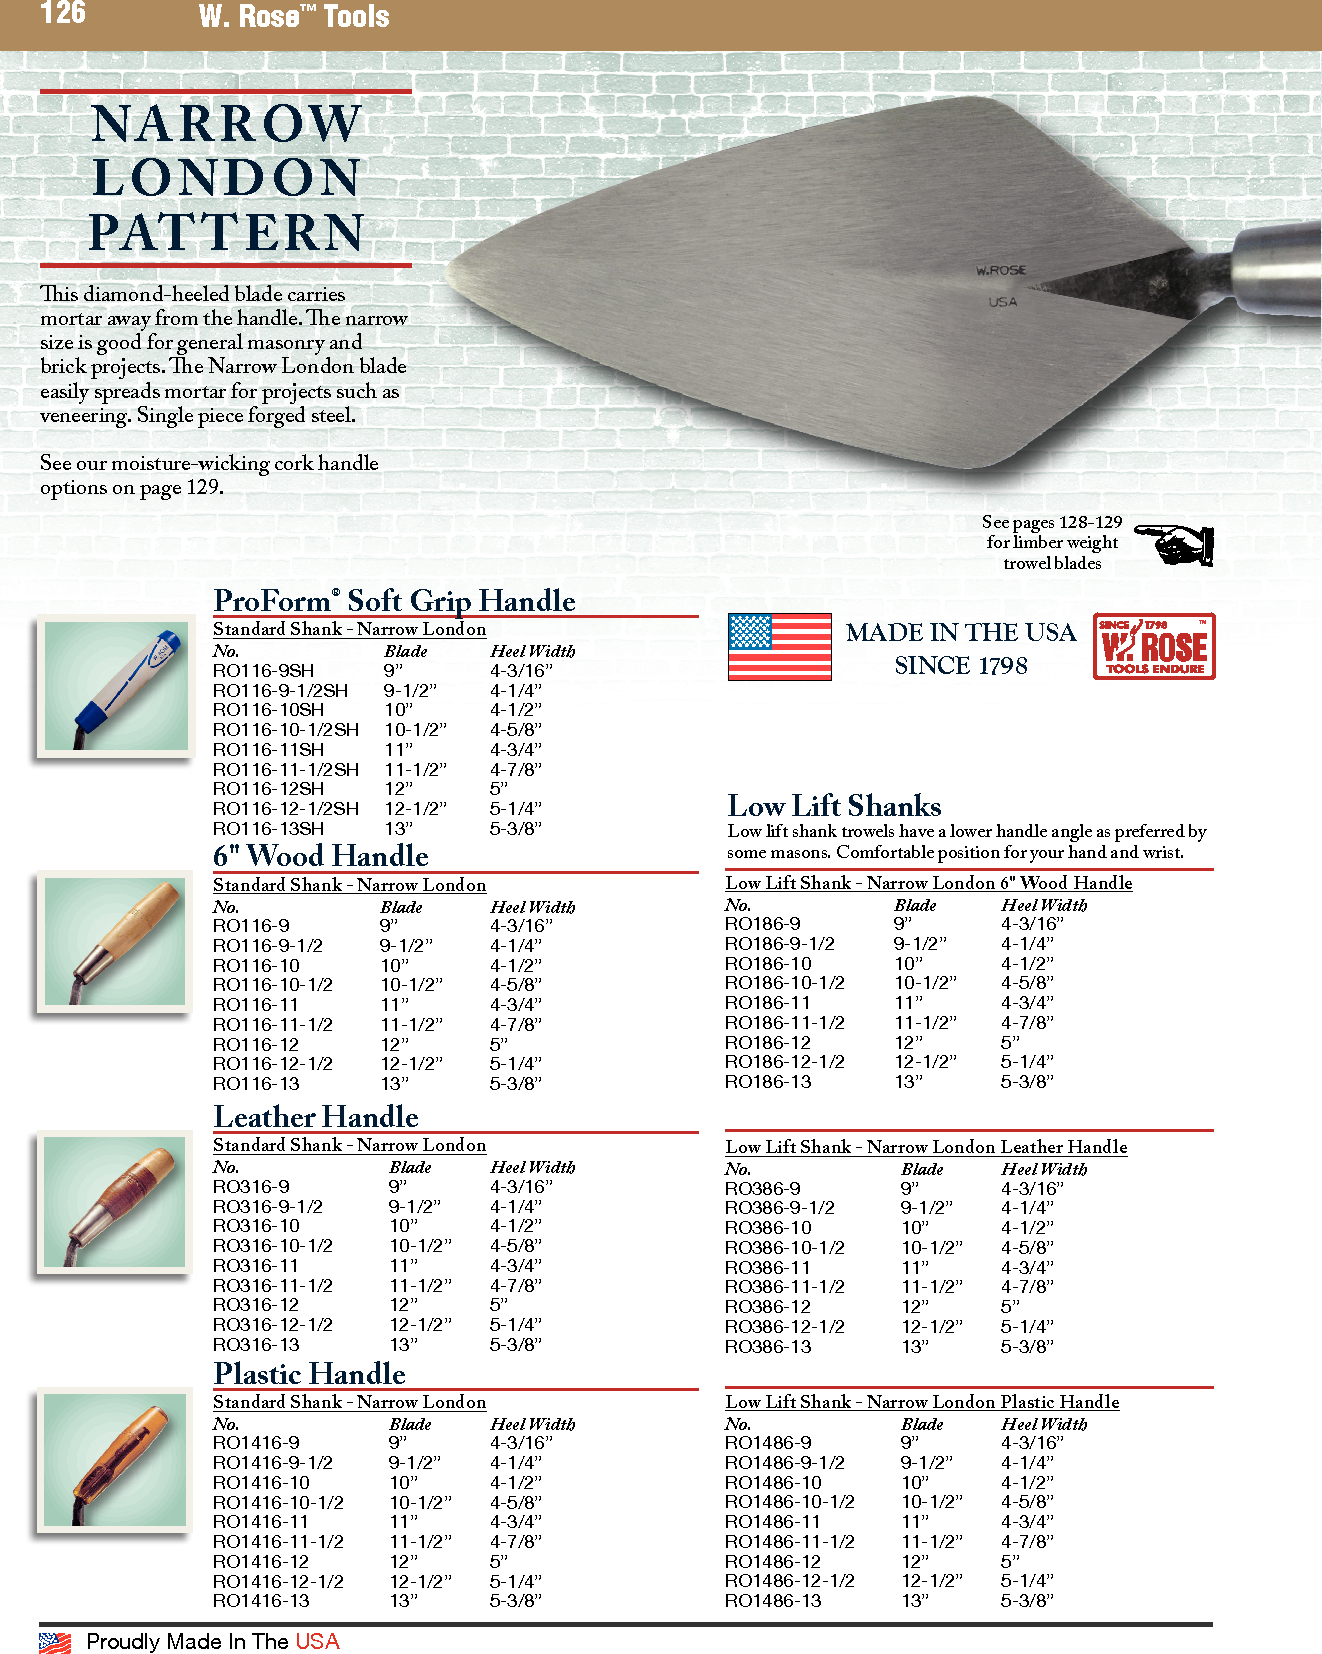 0126CatalogPage1Oct20200126.jpg